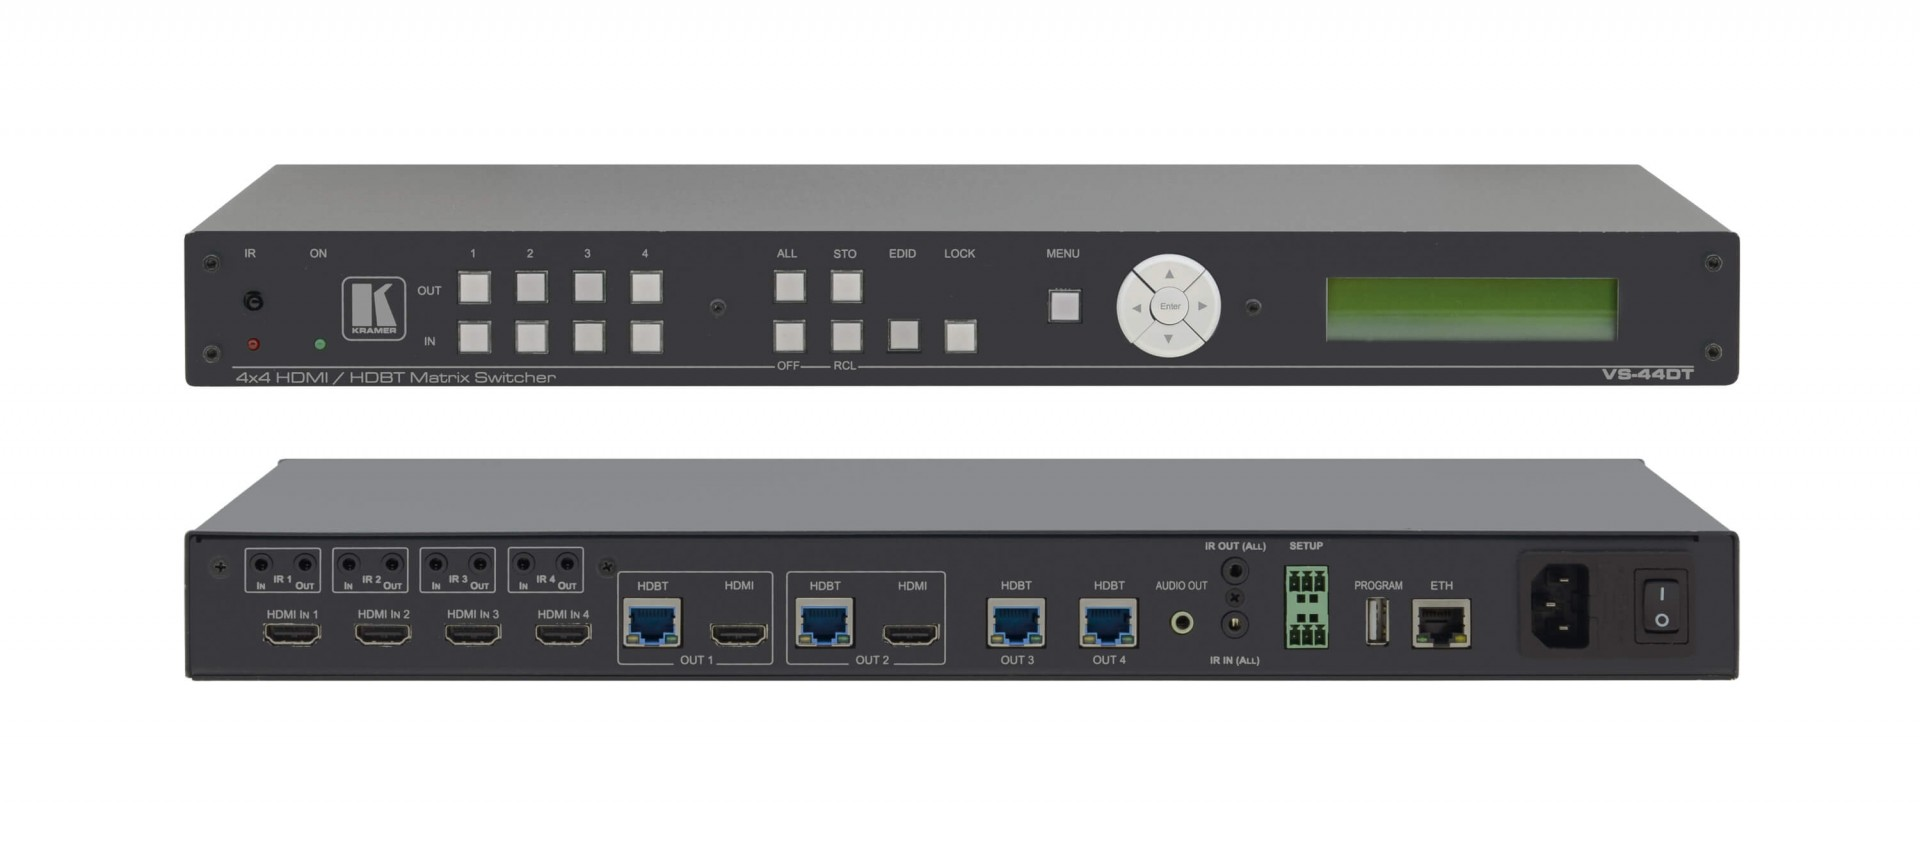 Kramer VS-44DT 4x4 4K60 4:2:0 HDMI/HDBaseT Extended–Reach PoE Matrix Switcher